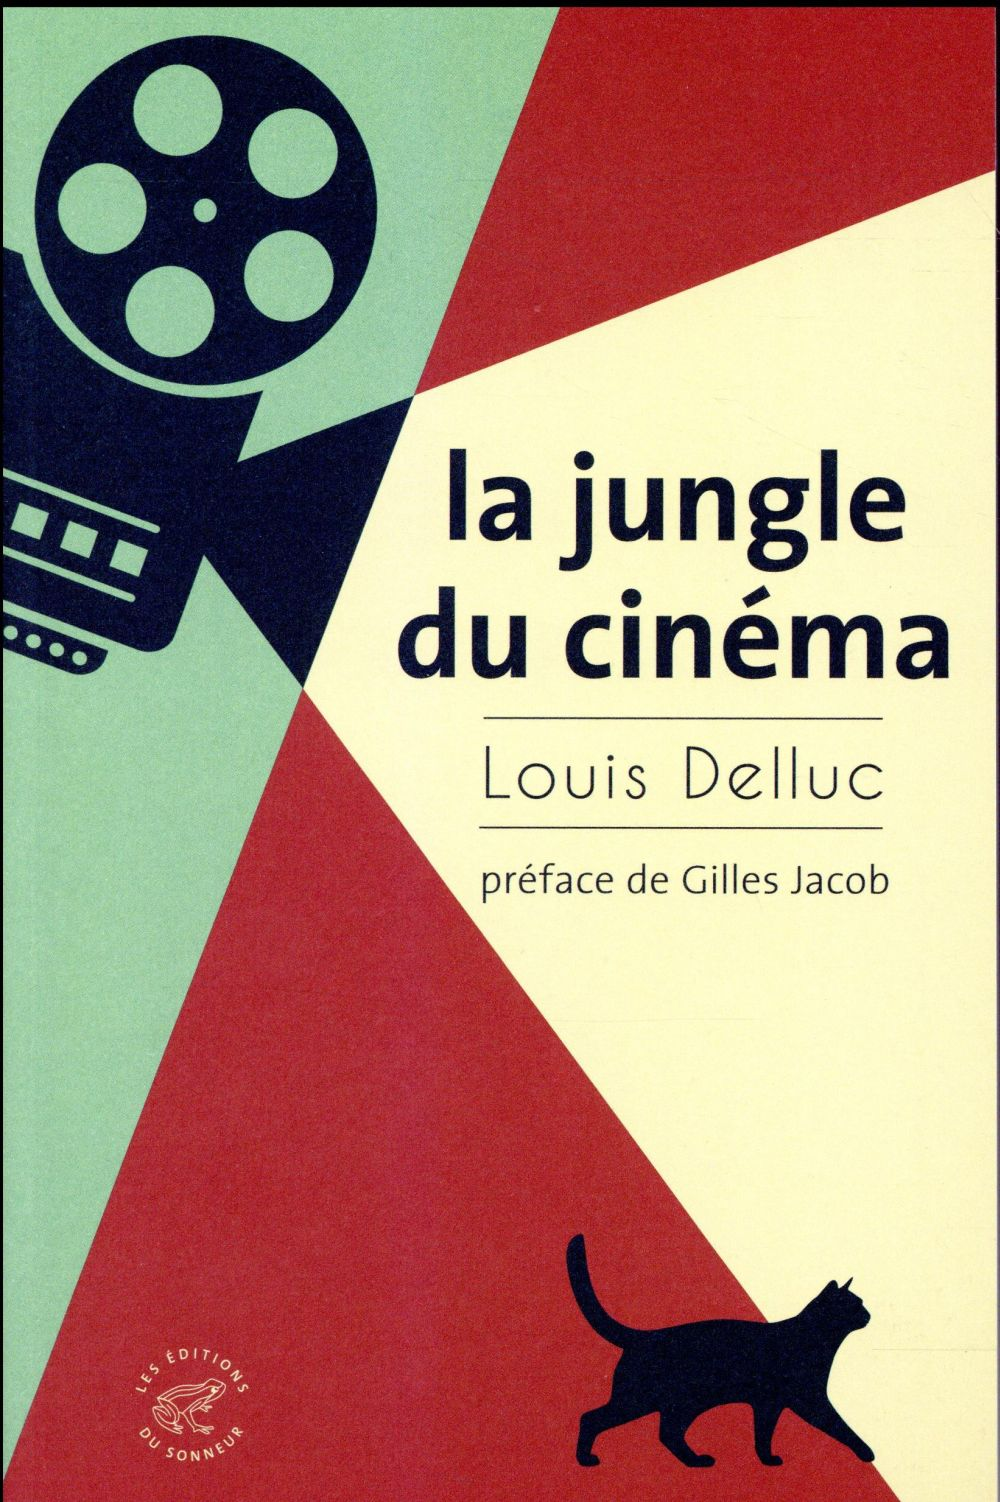 LA JUNGLE DU CINEMA